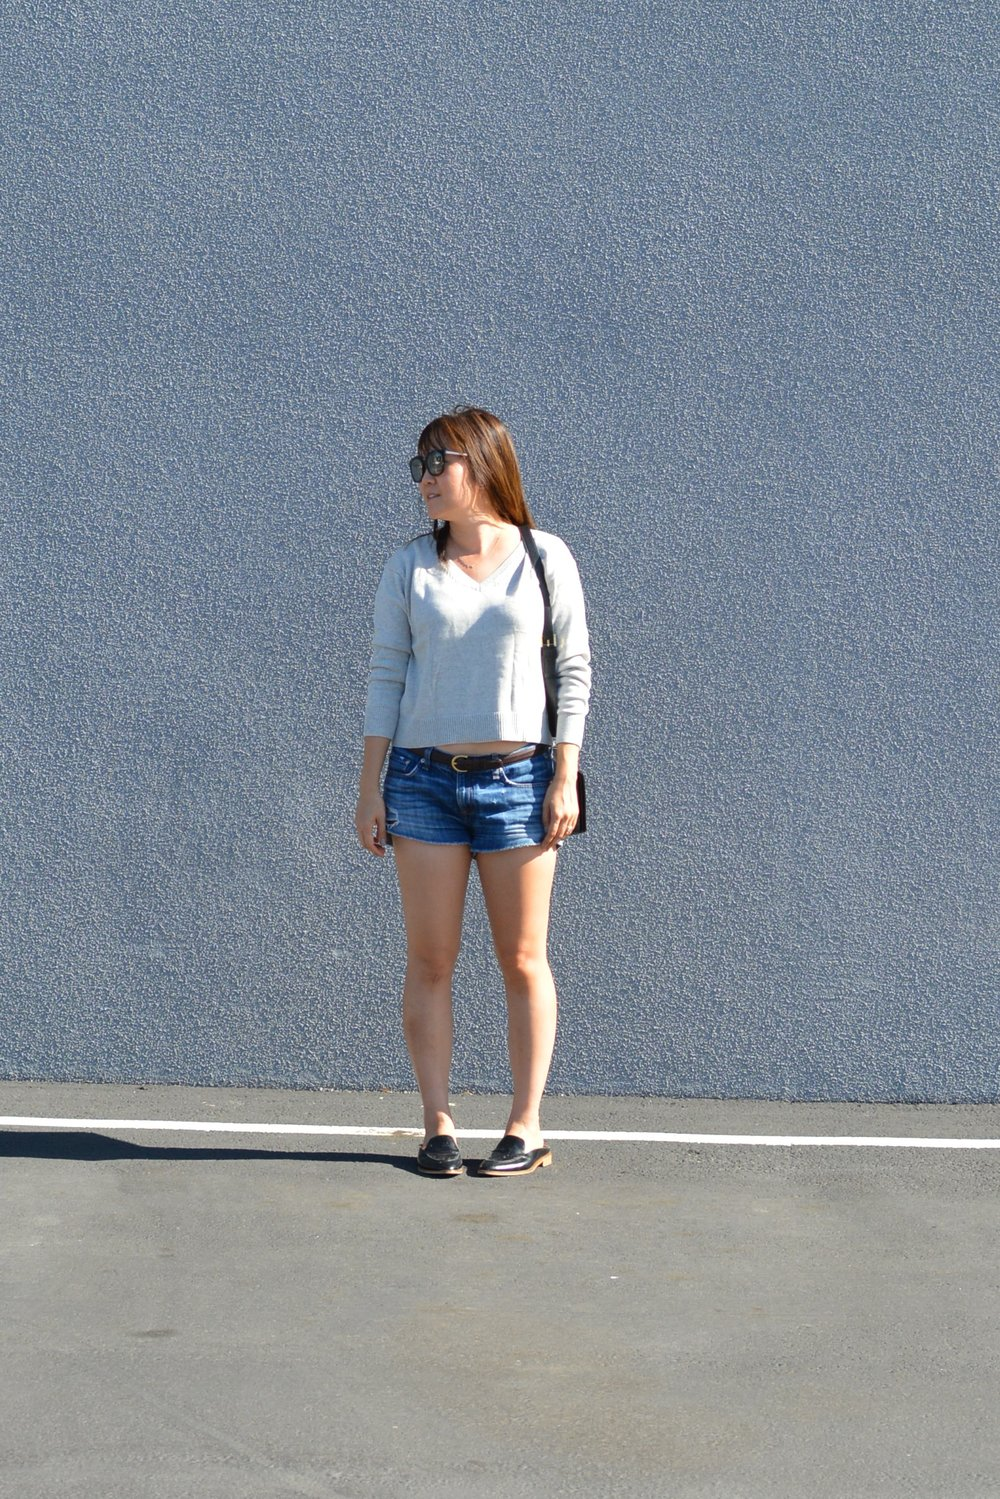 Everlane Review Cotton Long Sleeve V-neck Crop (3 of 3)-min.jpg